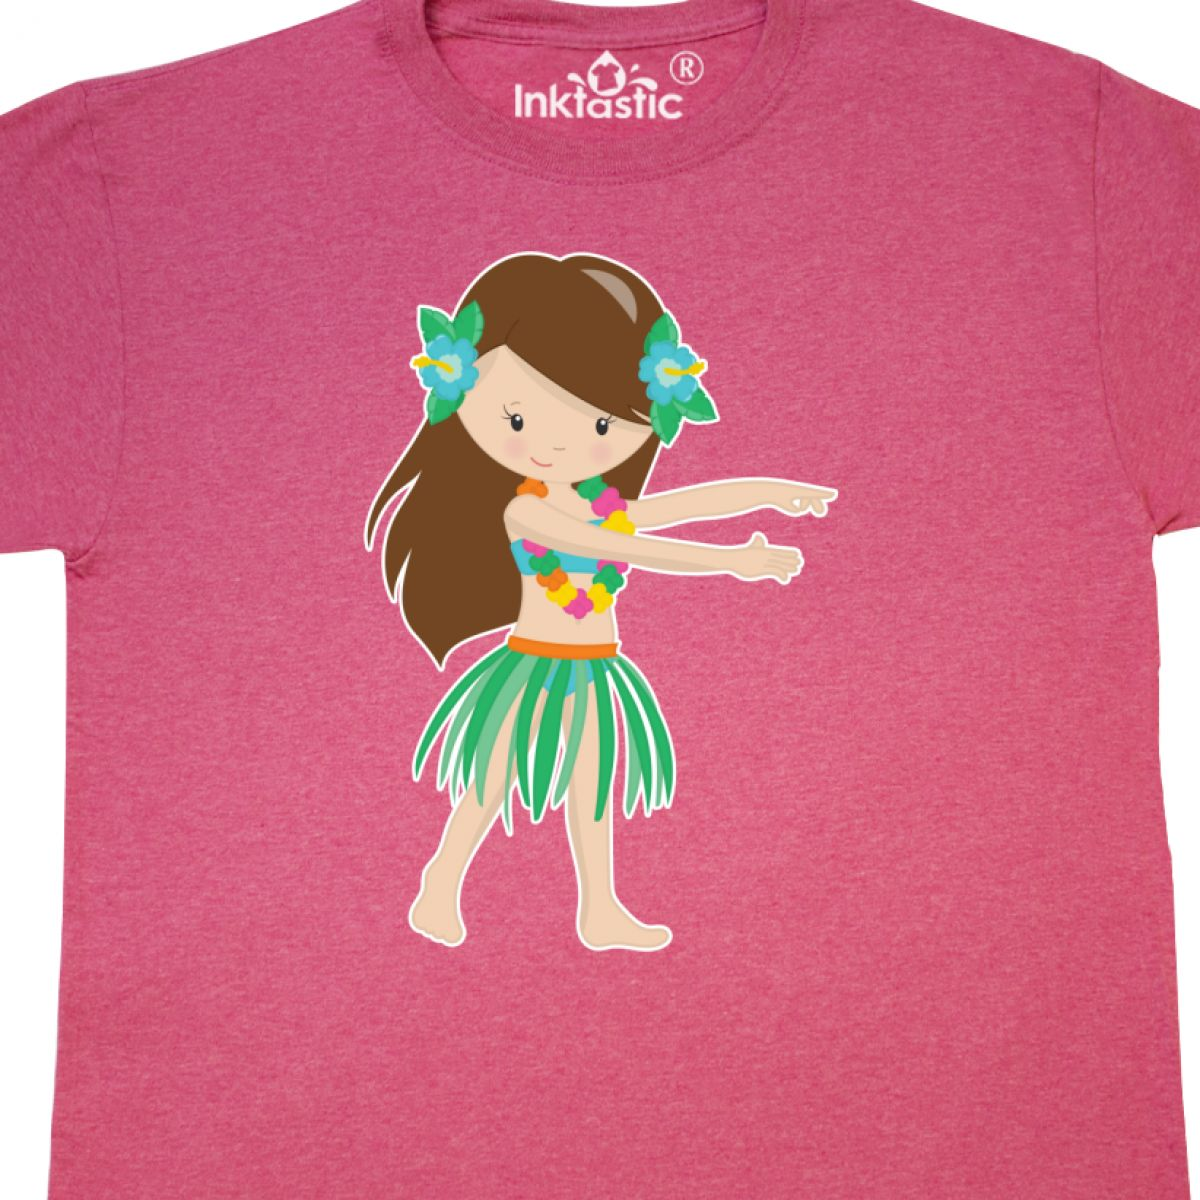 Inktastic-Brown-Haired-Hula-Girl-T-Shirt-Brunette-Adorable-Cute-Vacation-Luau